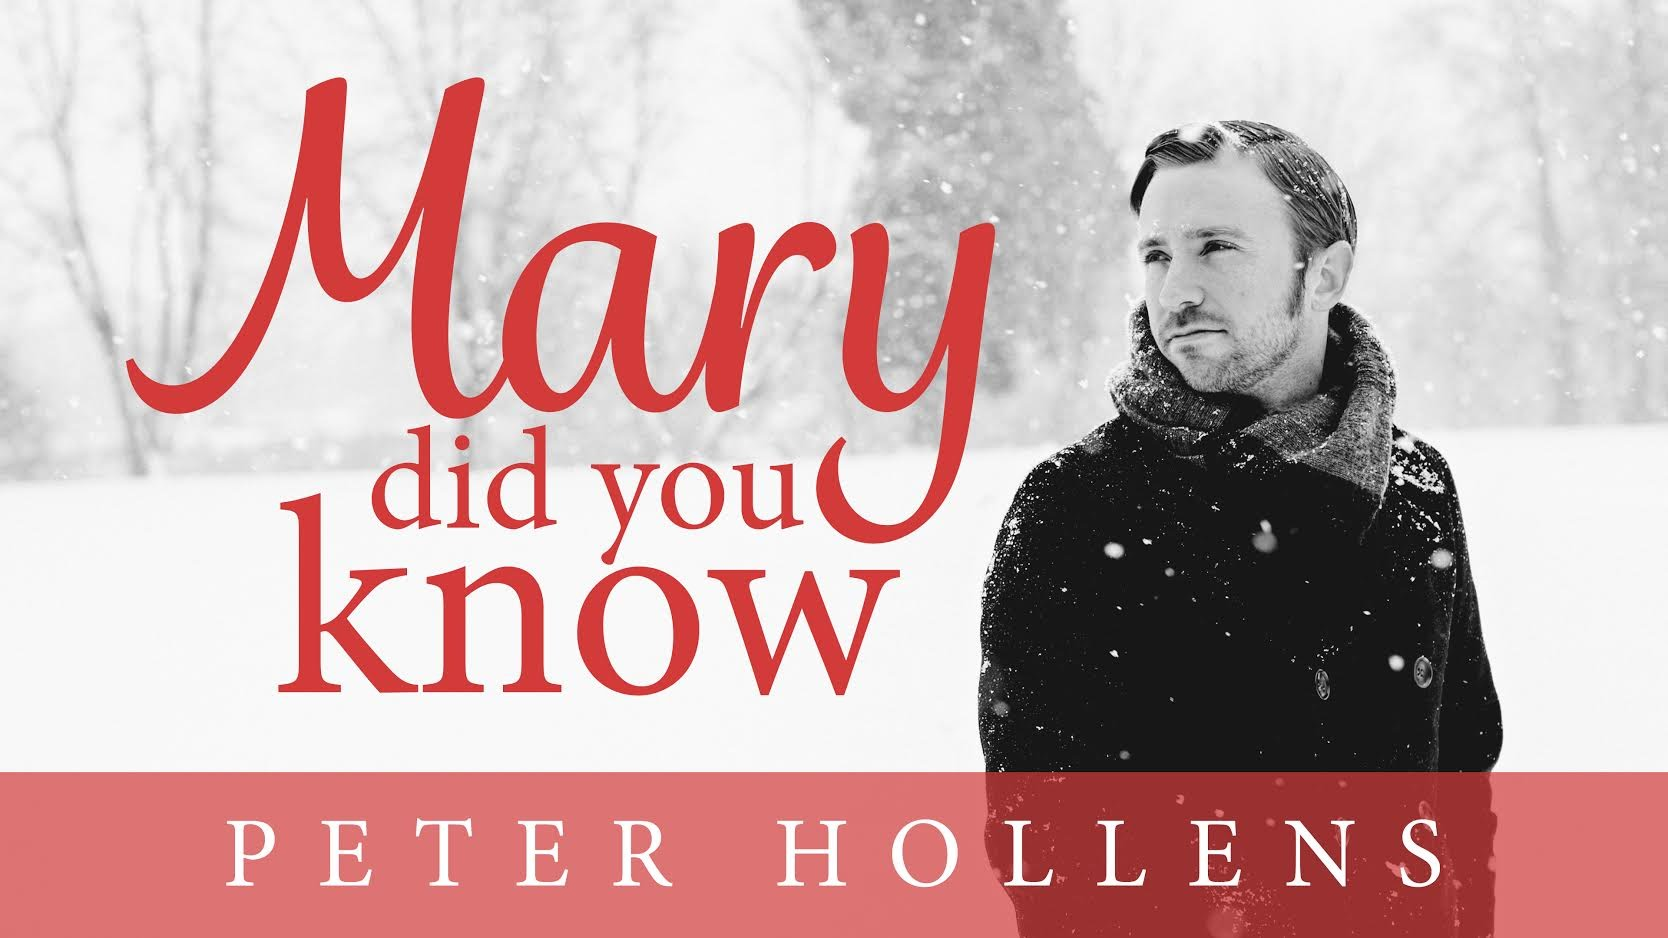 Peter Hollens' Soaring Version of Mary Did You Know - My Merry Christmas